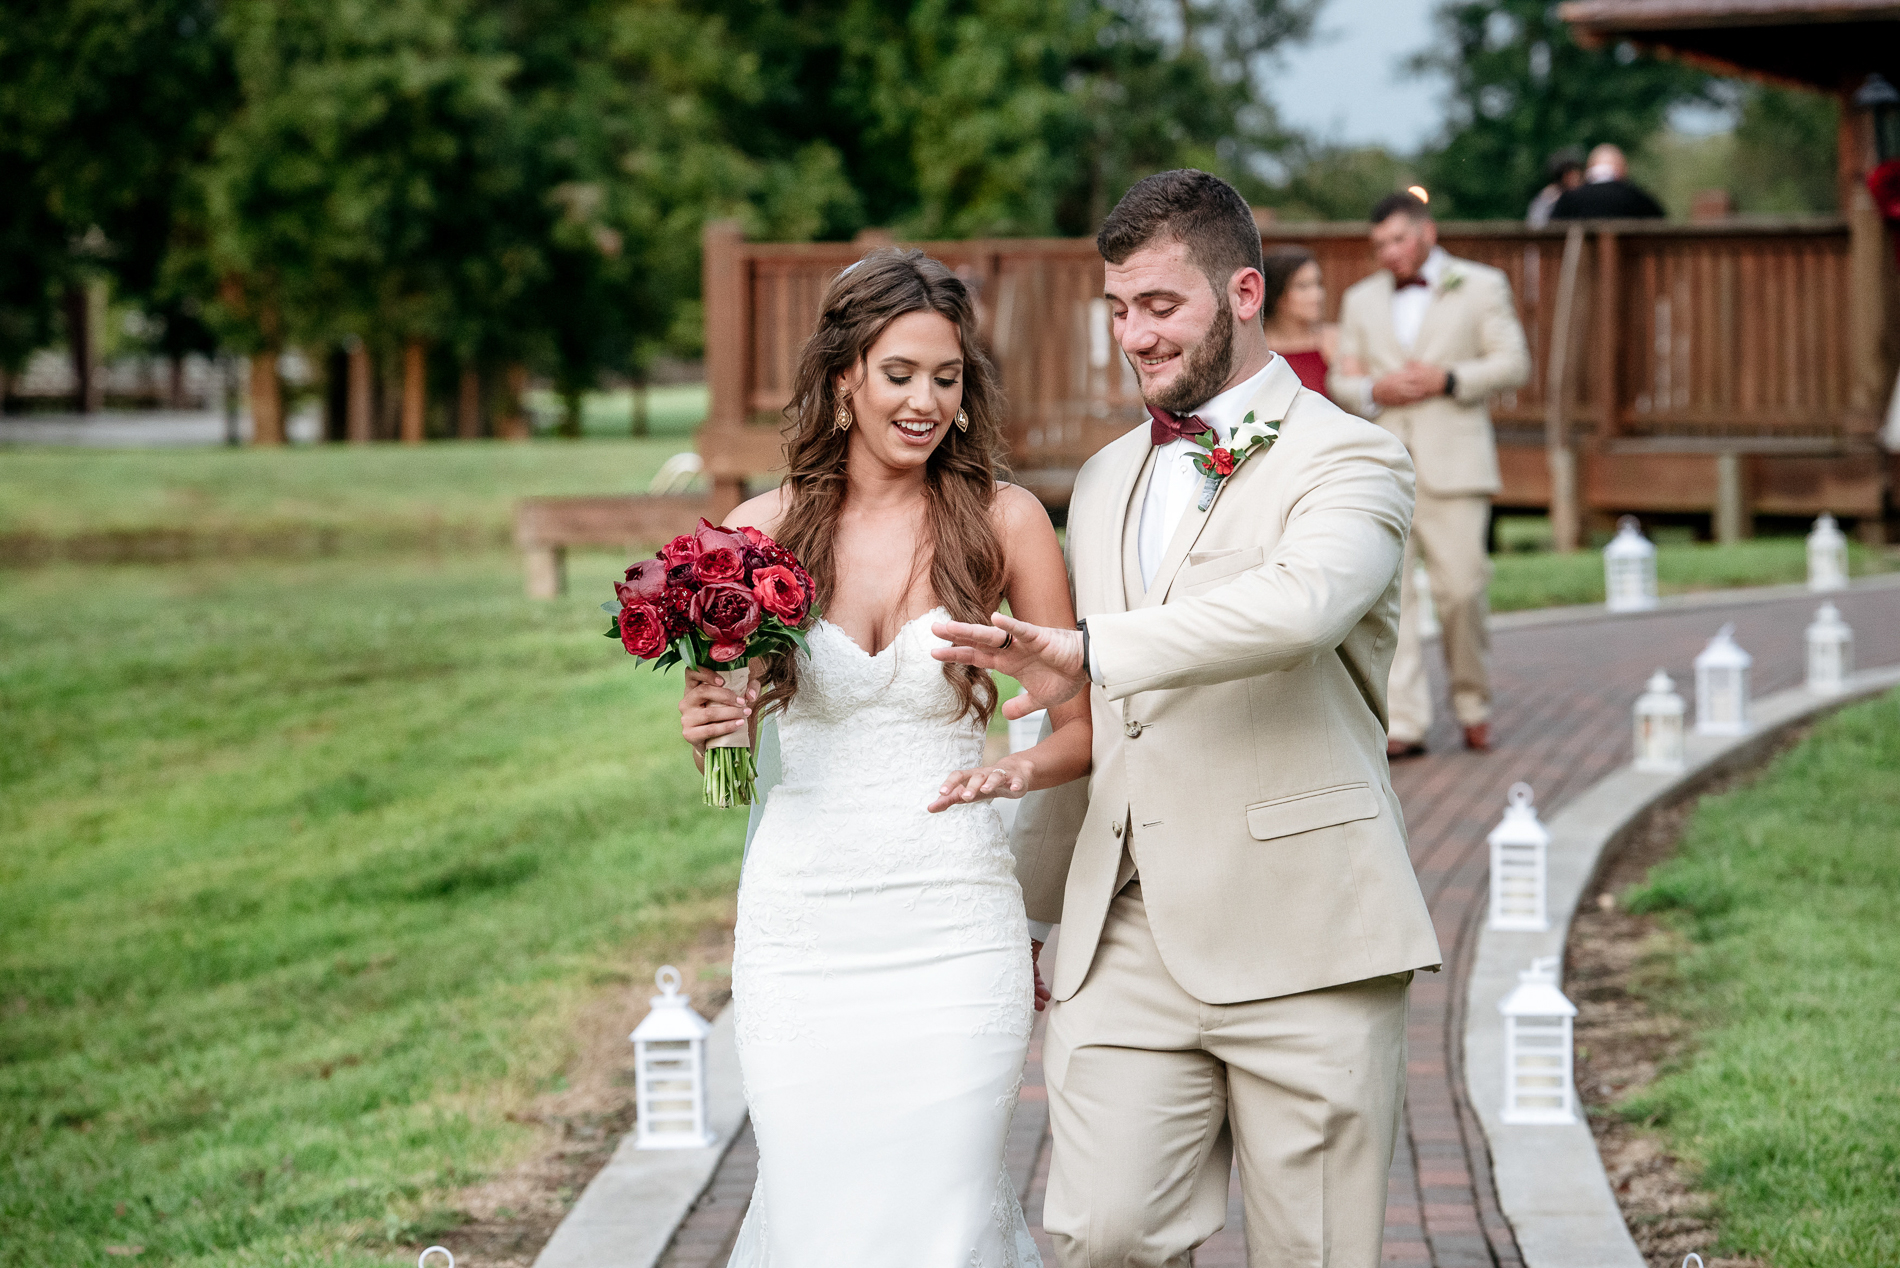 10-wedding-photographer-baton-rouge-2.jpg